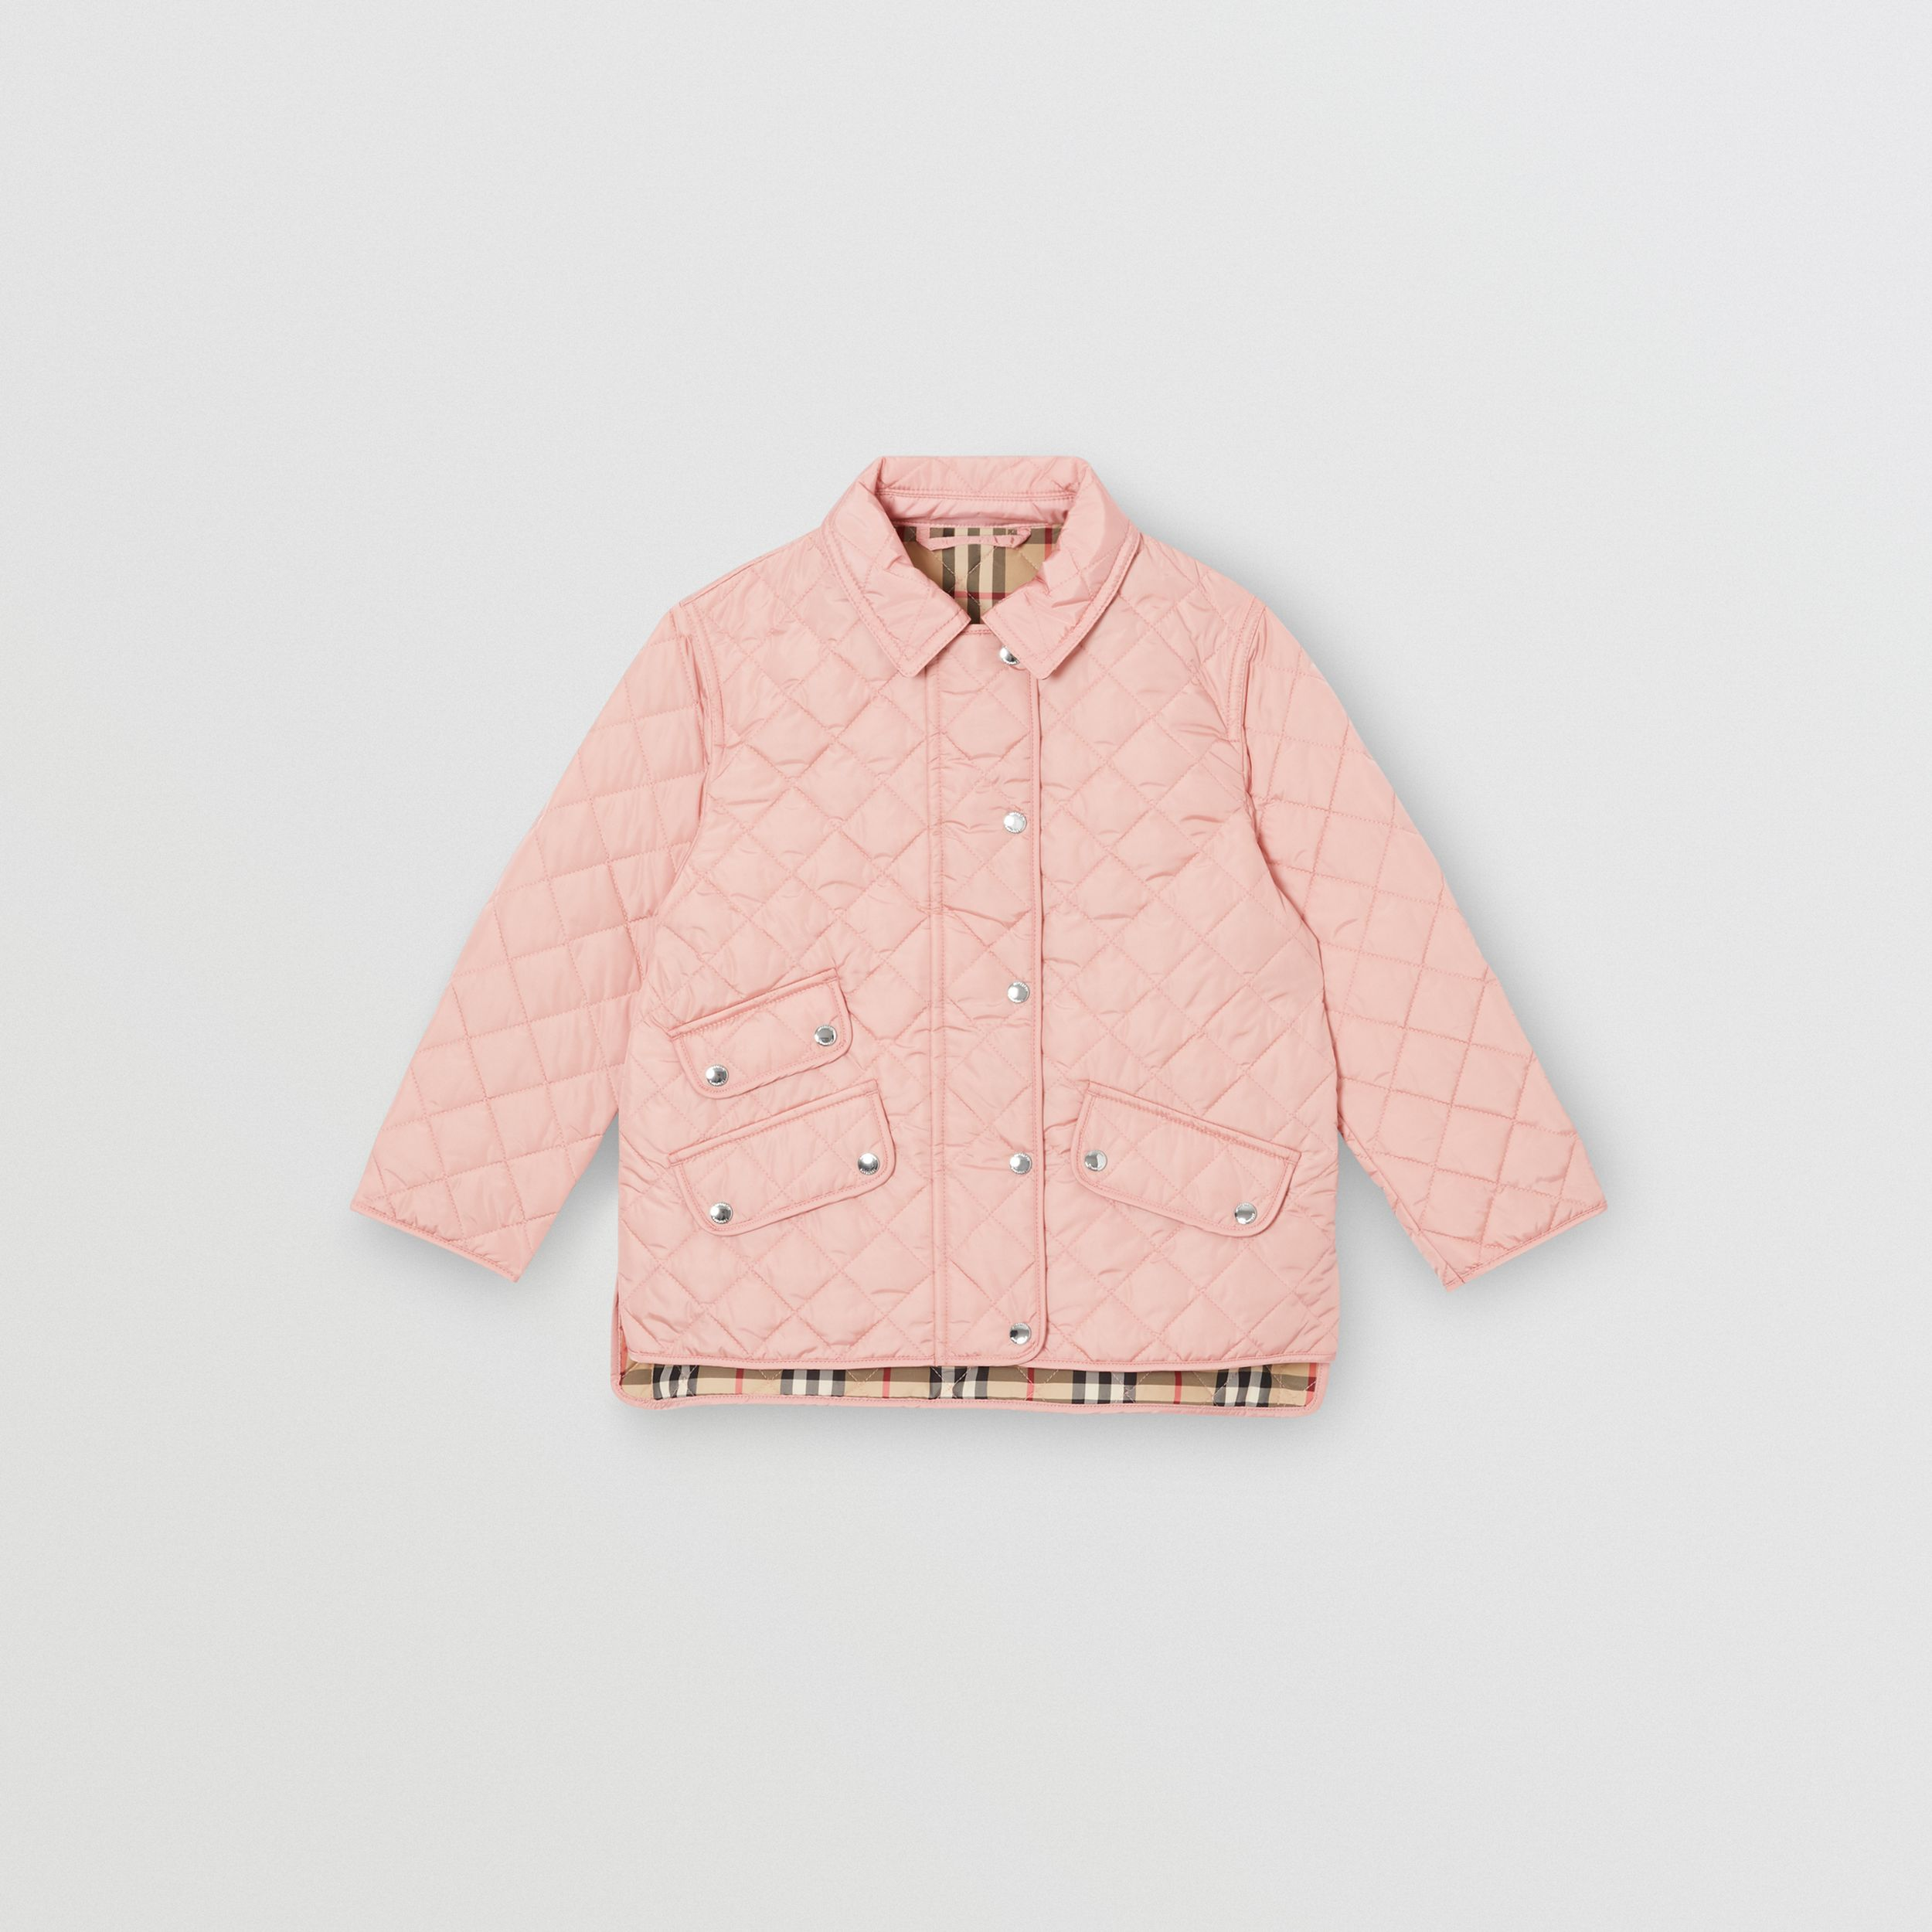 Lightweight Diamond Quilted Jacket in Dusty Pink | Burberry - 1